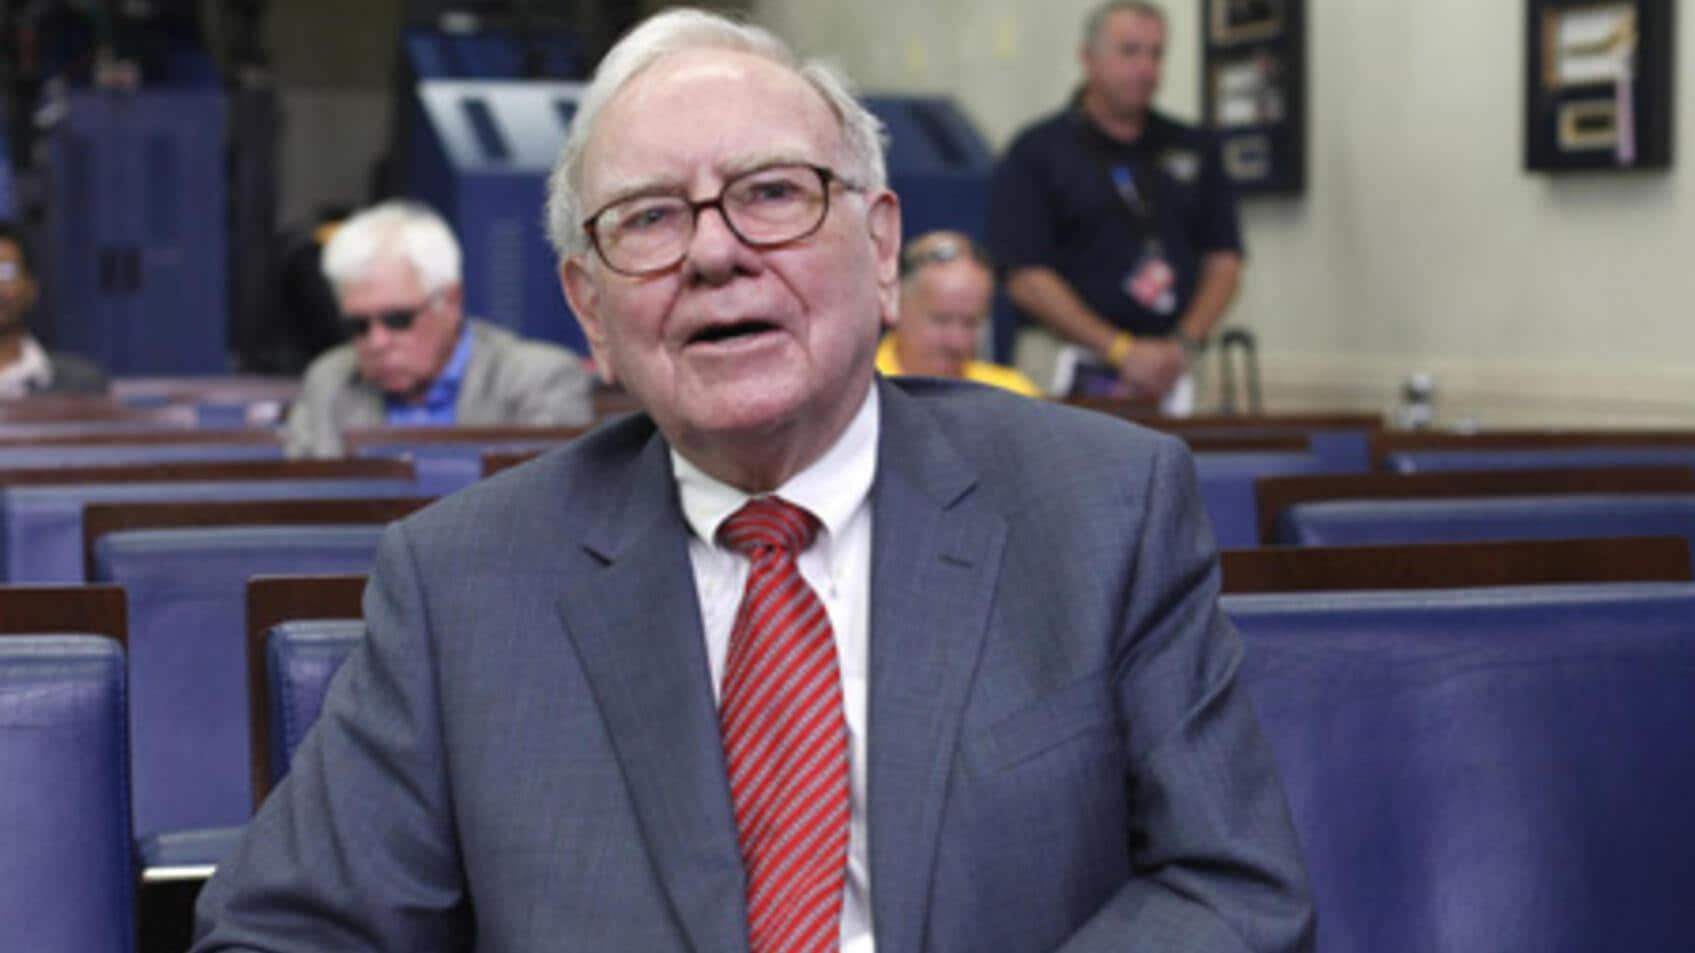 Finanzinvestor Warren Buffett leidet an Krebs